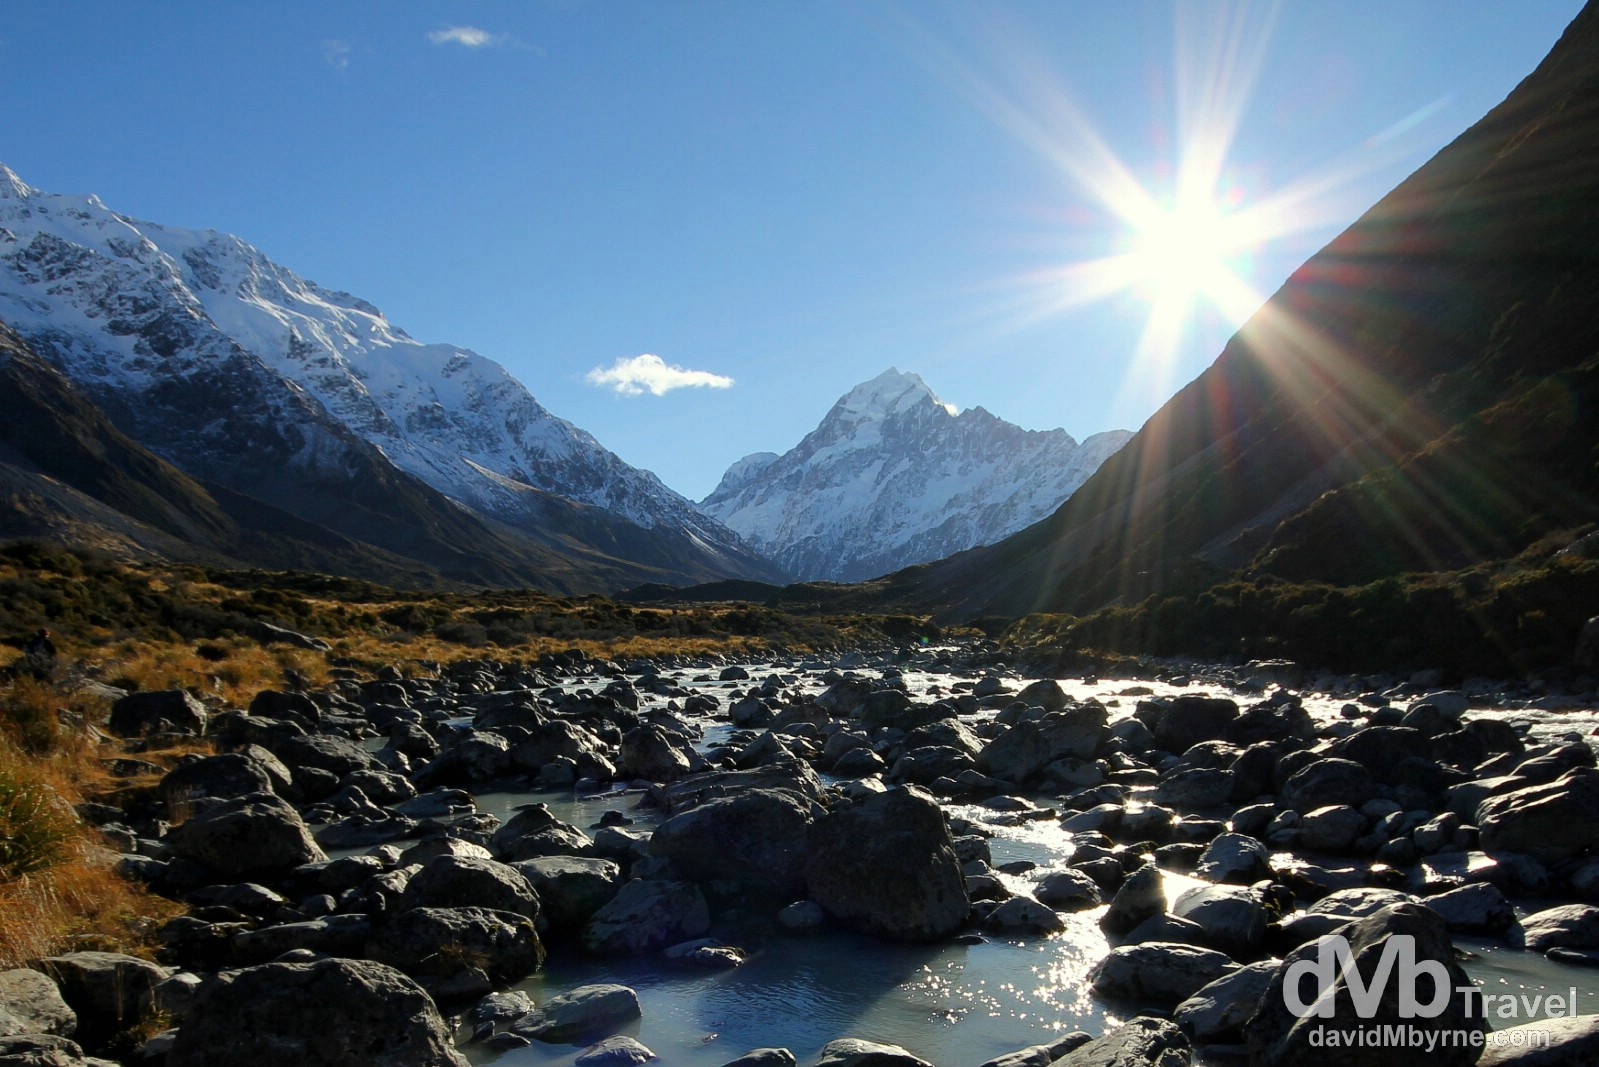 Mount Cook as seen from the Hooker Valley, Mount Cook National Park, South Island, New Zealand. May 31st 2012.